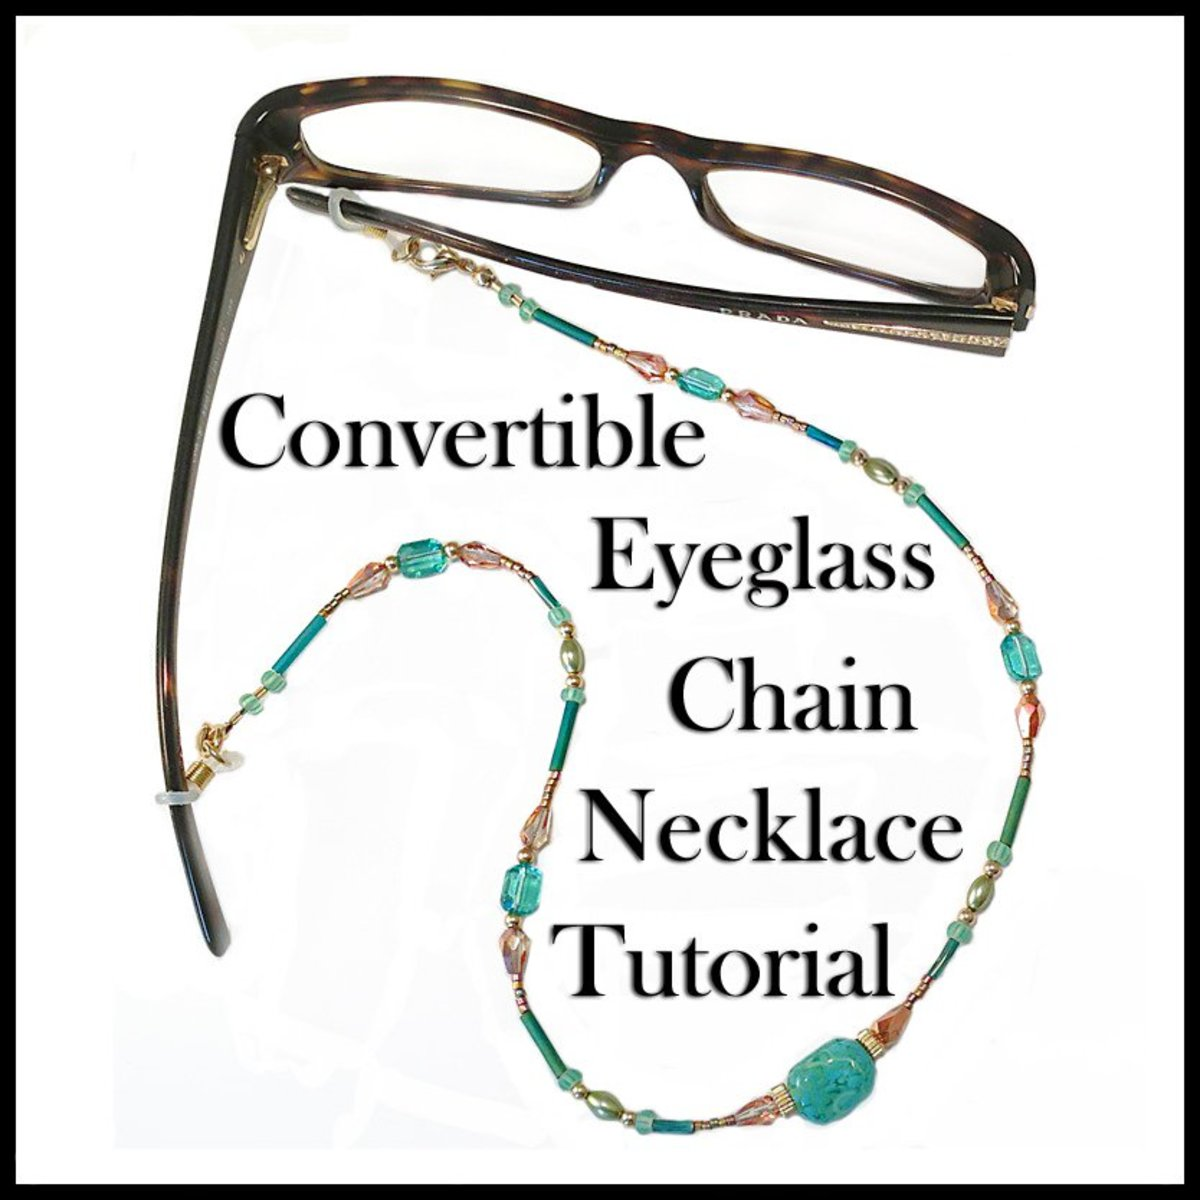 How to Make a Beaded Convertible Eyeglass Holder and Necklace